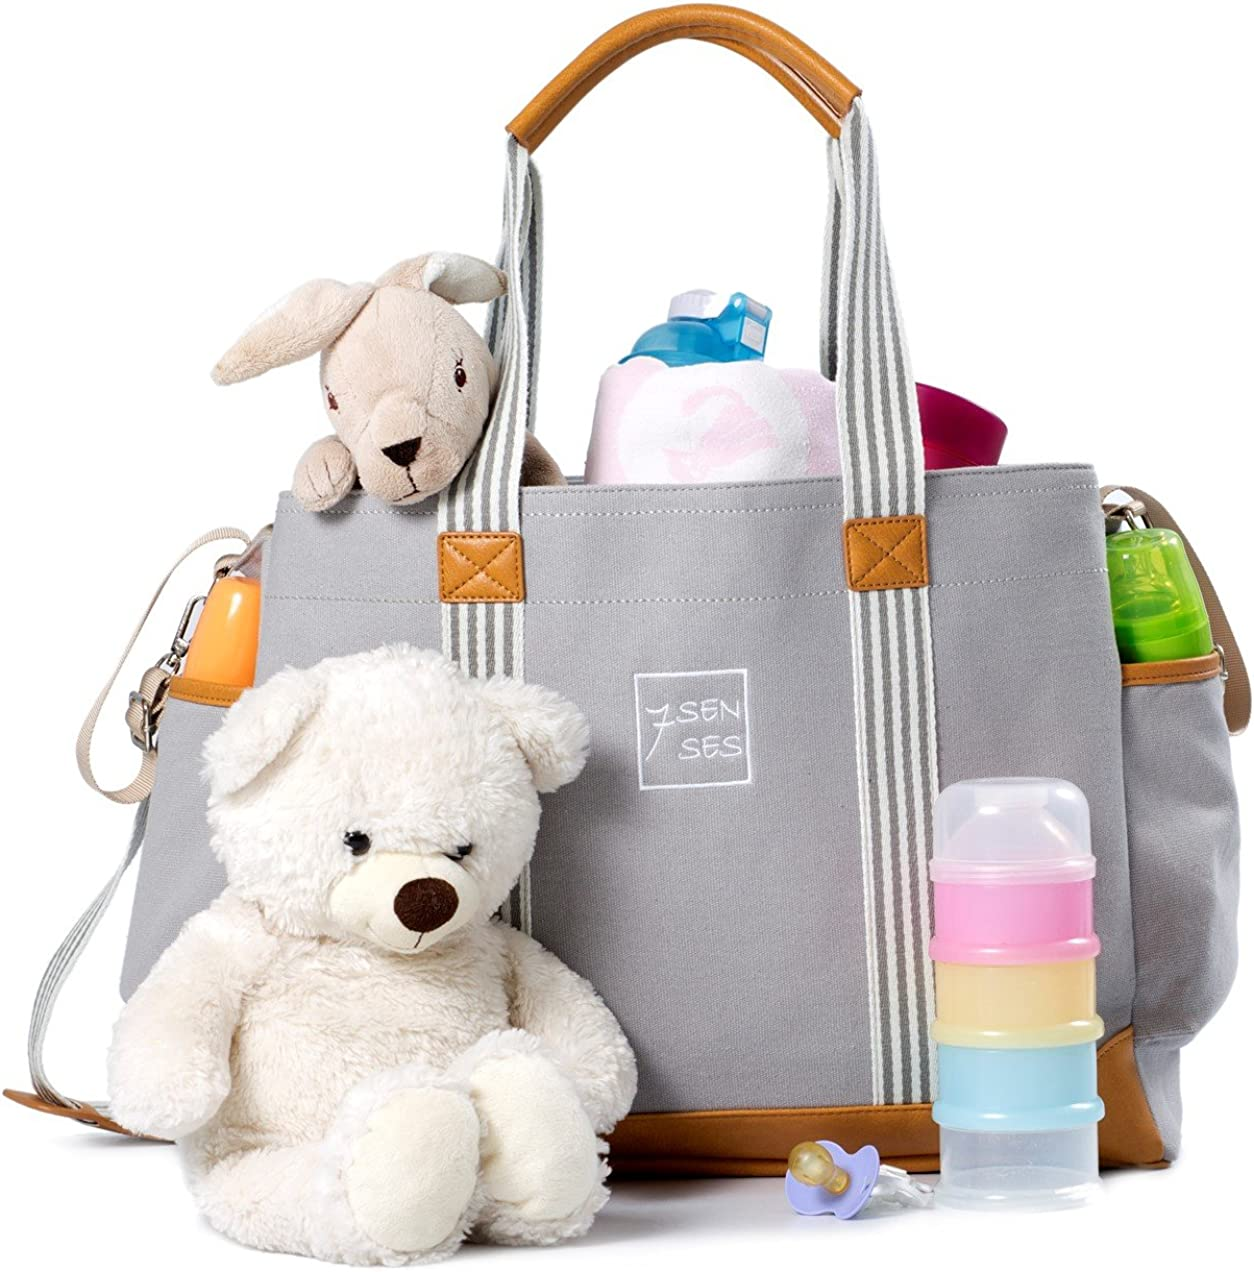 Diaper Bag Canvas Baby Tote Bag for Men and Women Travel with Newborn Girls Boys